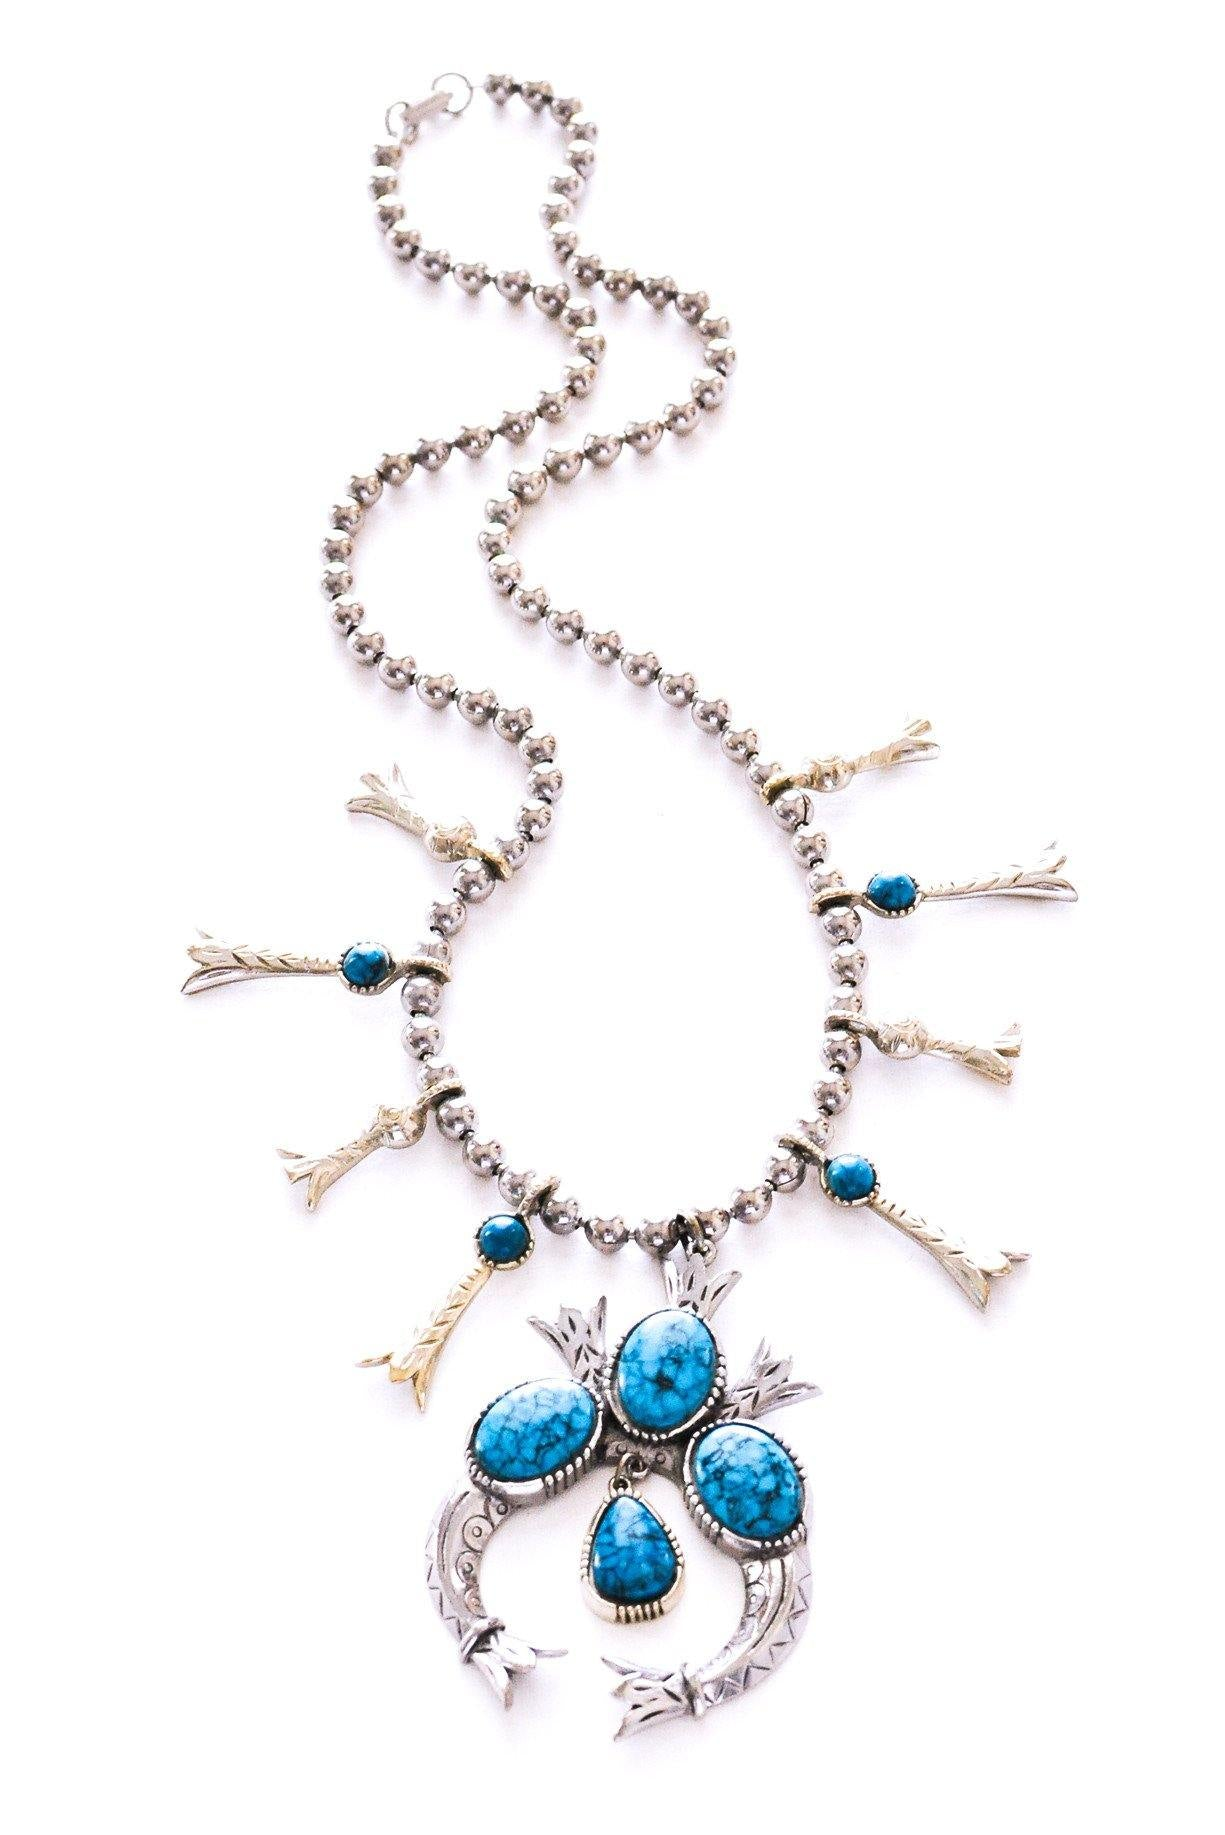 Squash Blossom Statement Necklace